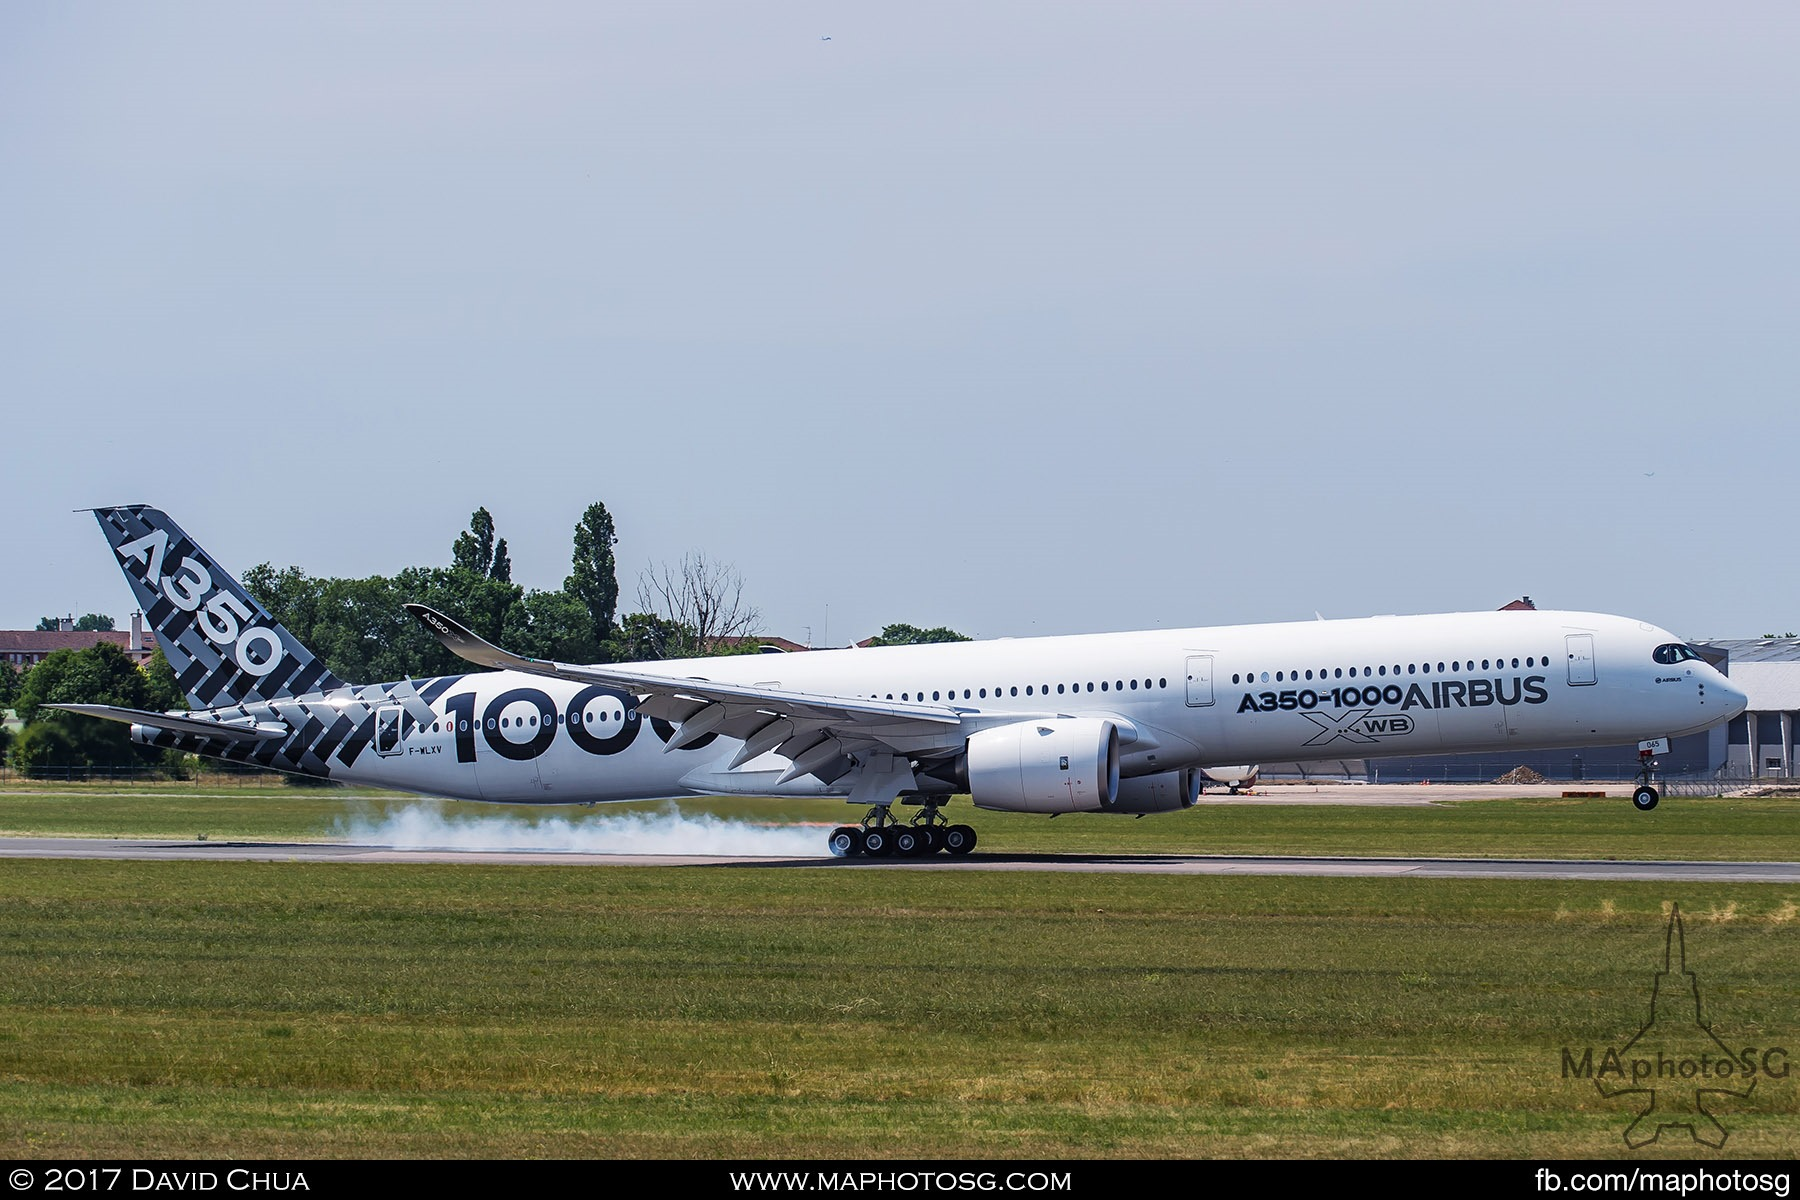 36. Having completed it's aerial display, the Airbus A350-1000 touches down at Le Bourget.